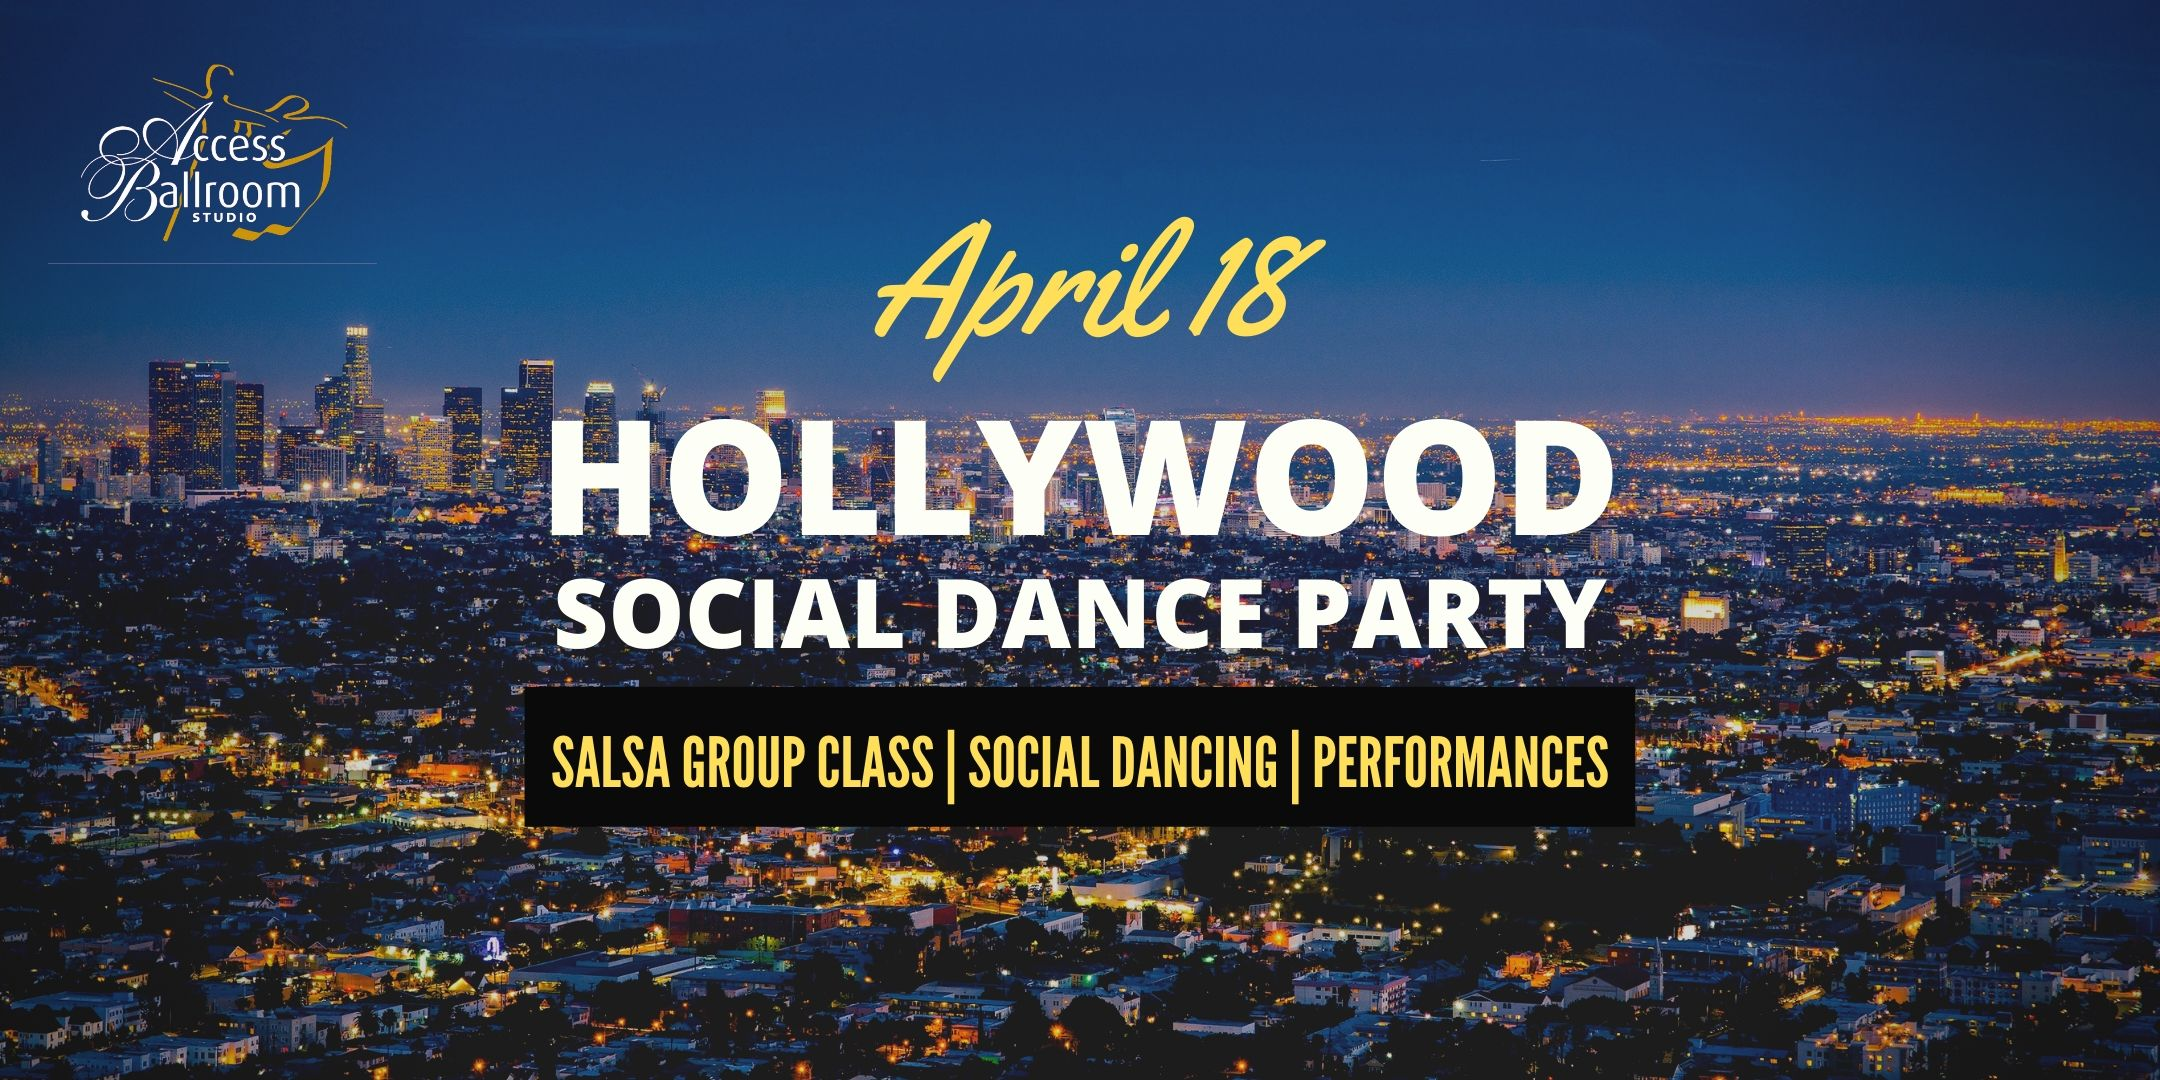 hollywood social dance party access ballroom